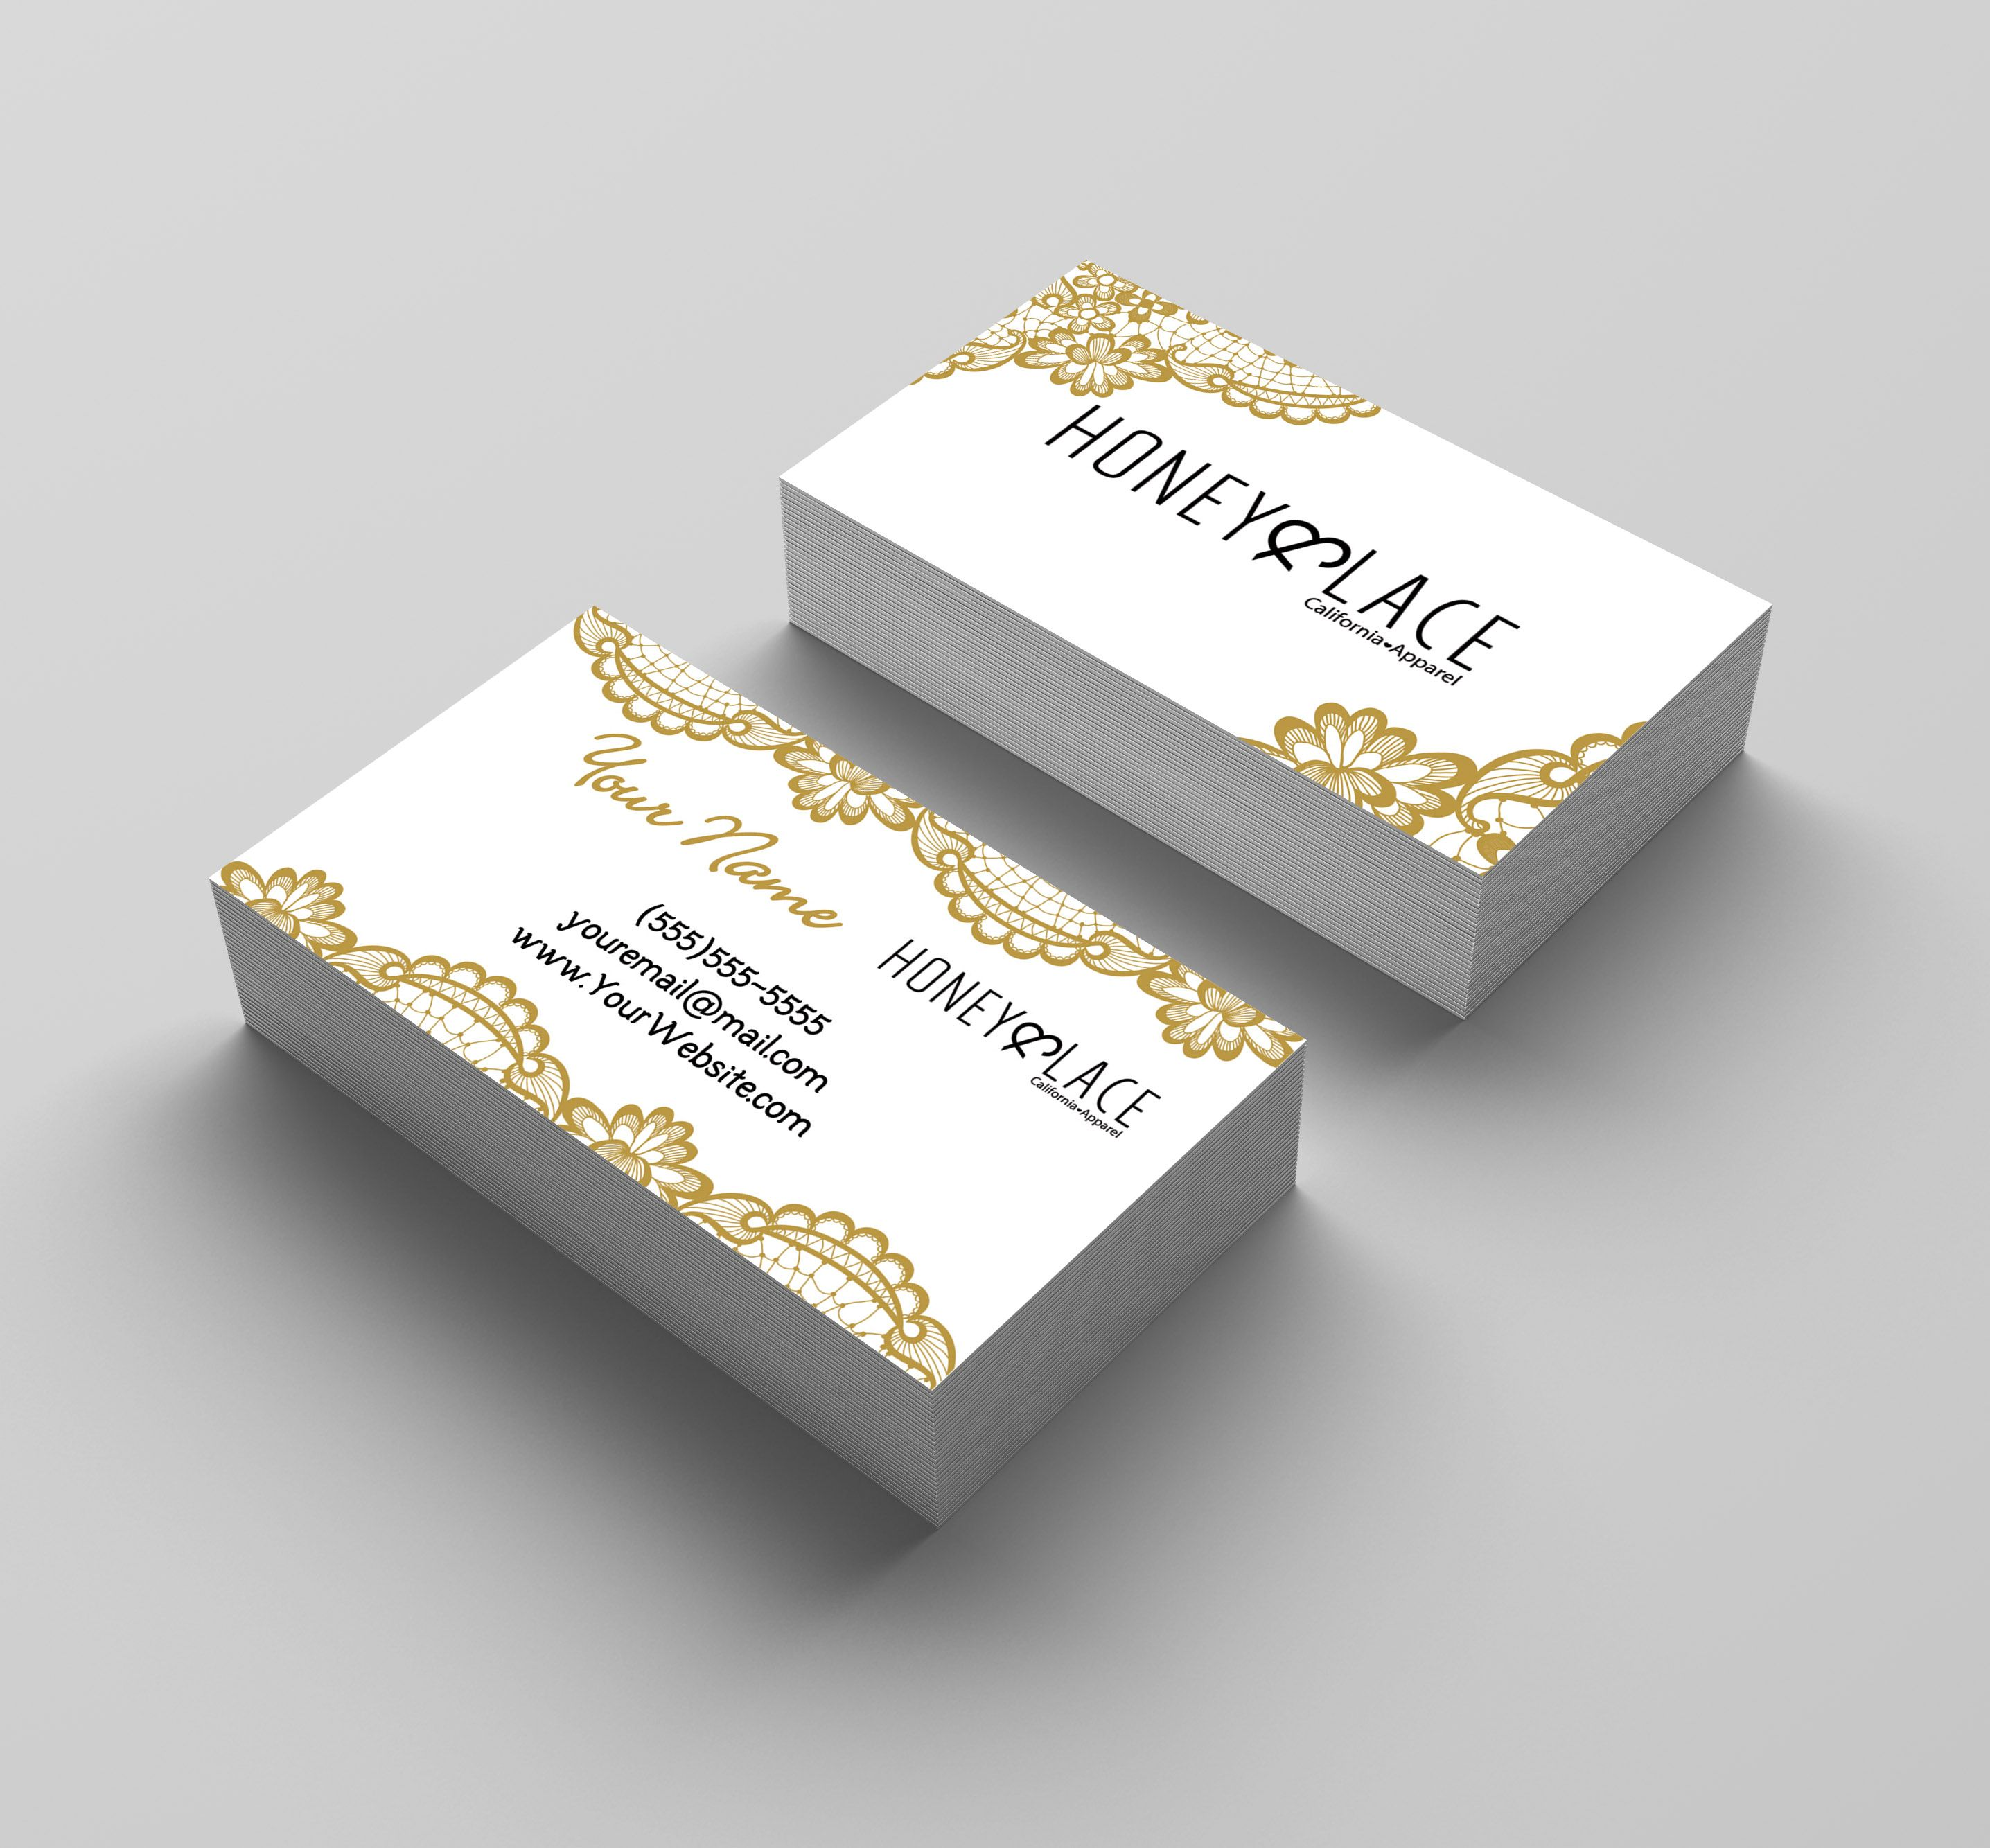 Honey lace business card 02 gold lace h l pinterest honey lace business card 02 gold lace magicingreecefo Choice Image